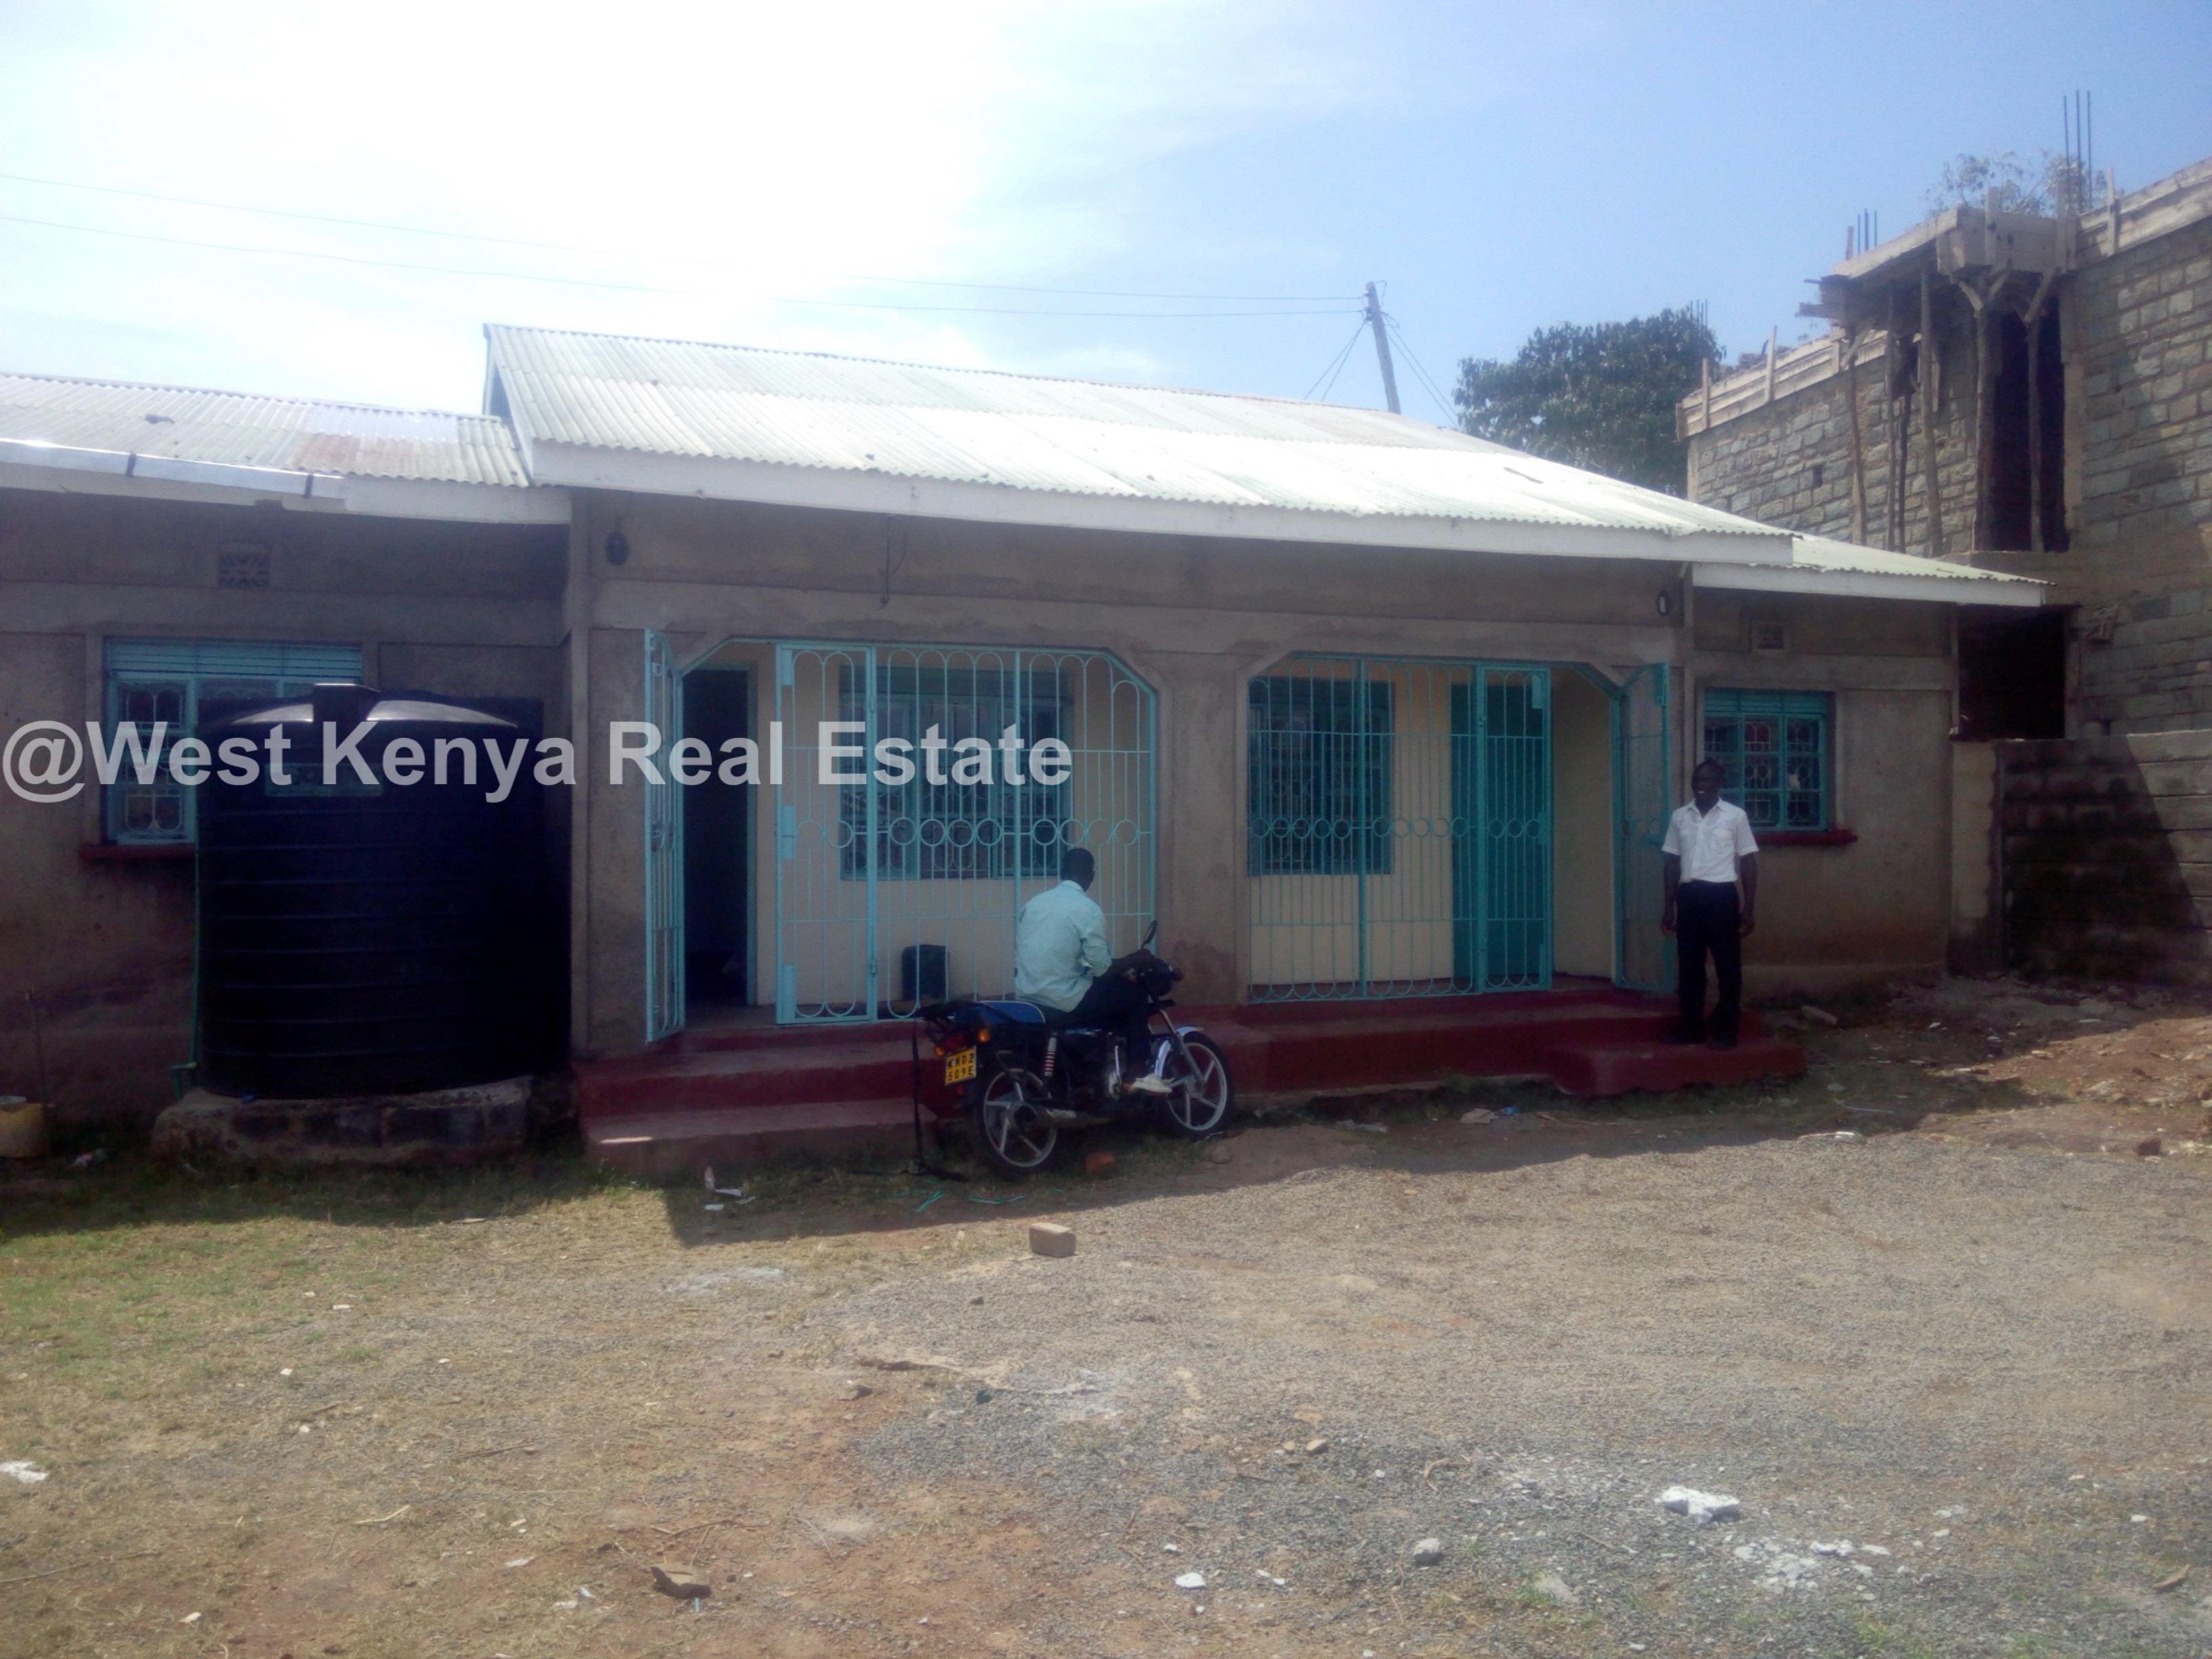 2 Bedroom house Mamboleo behind Power Station 6